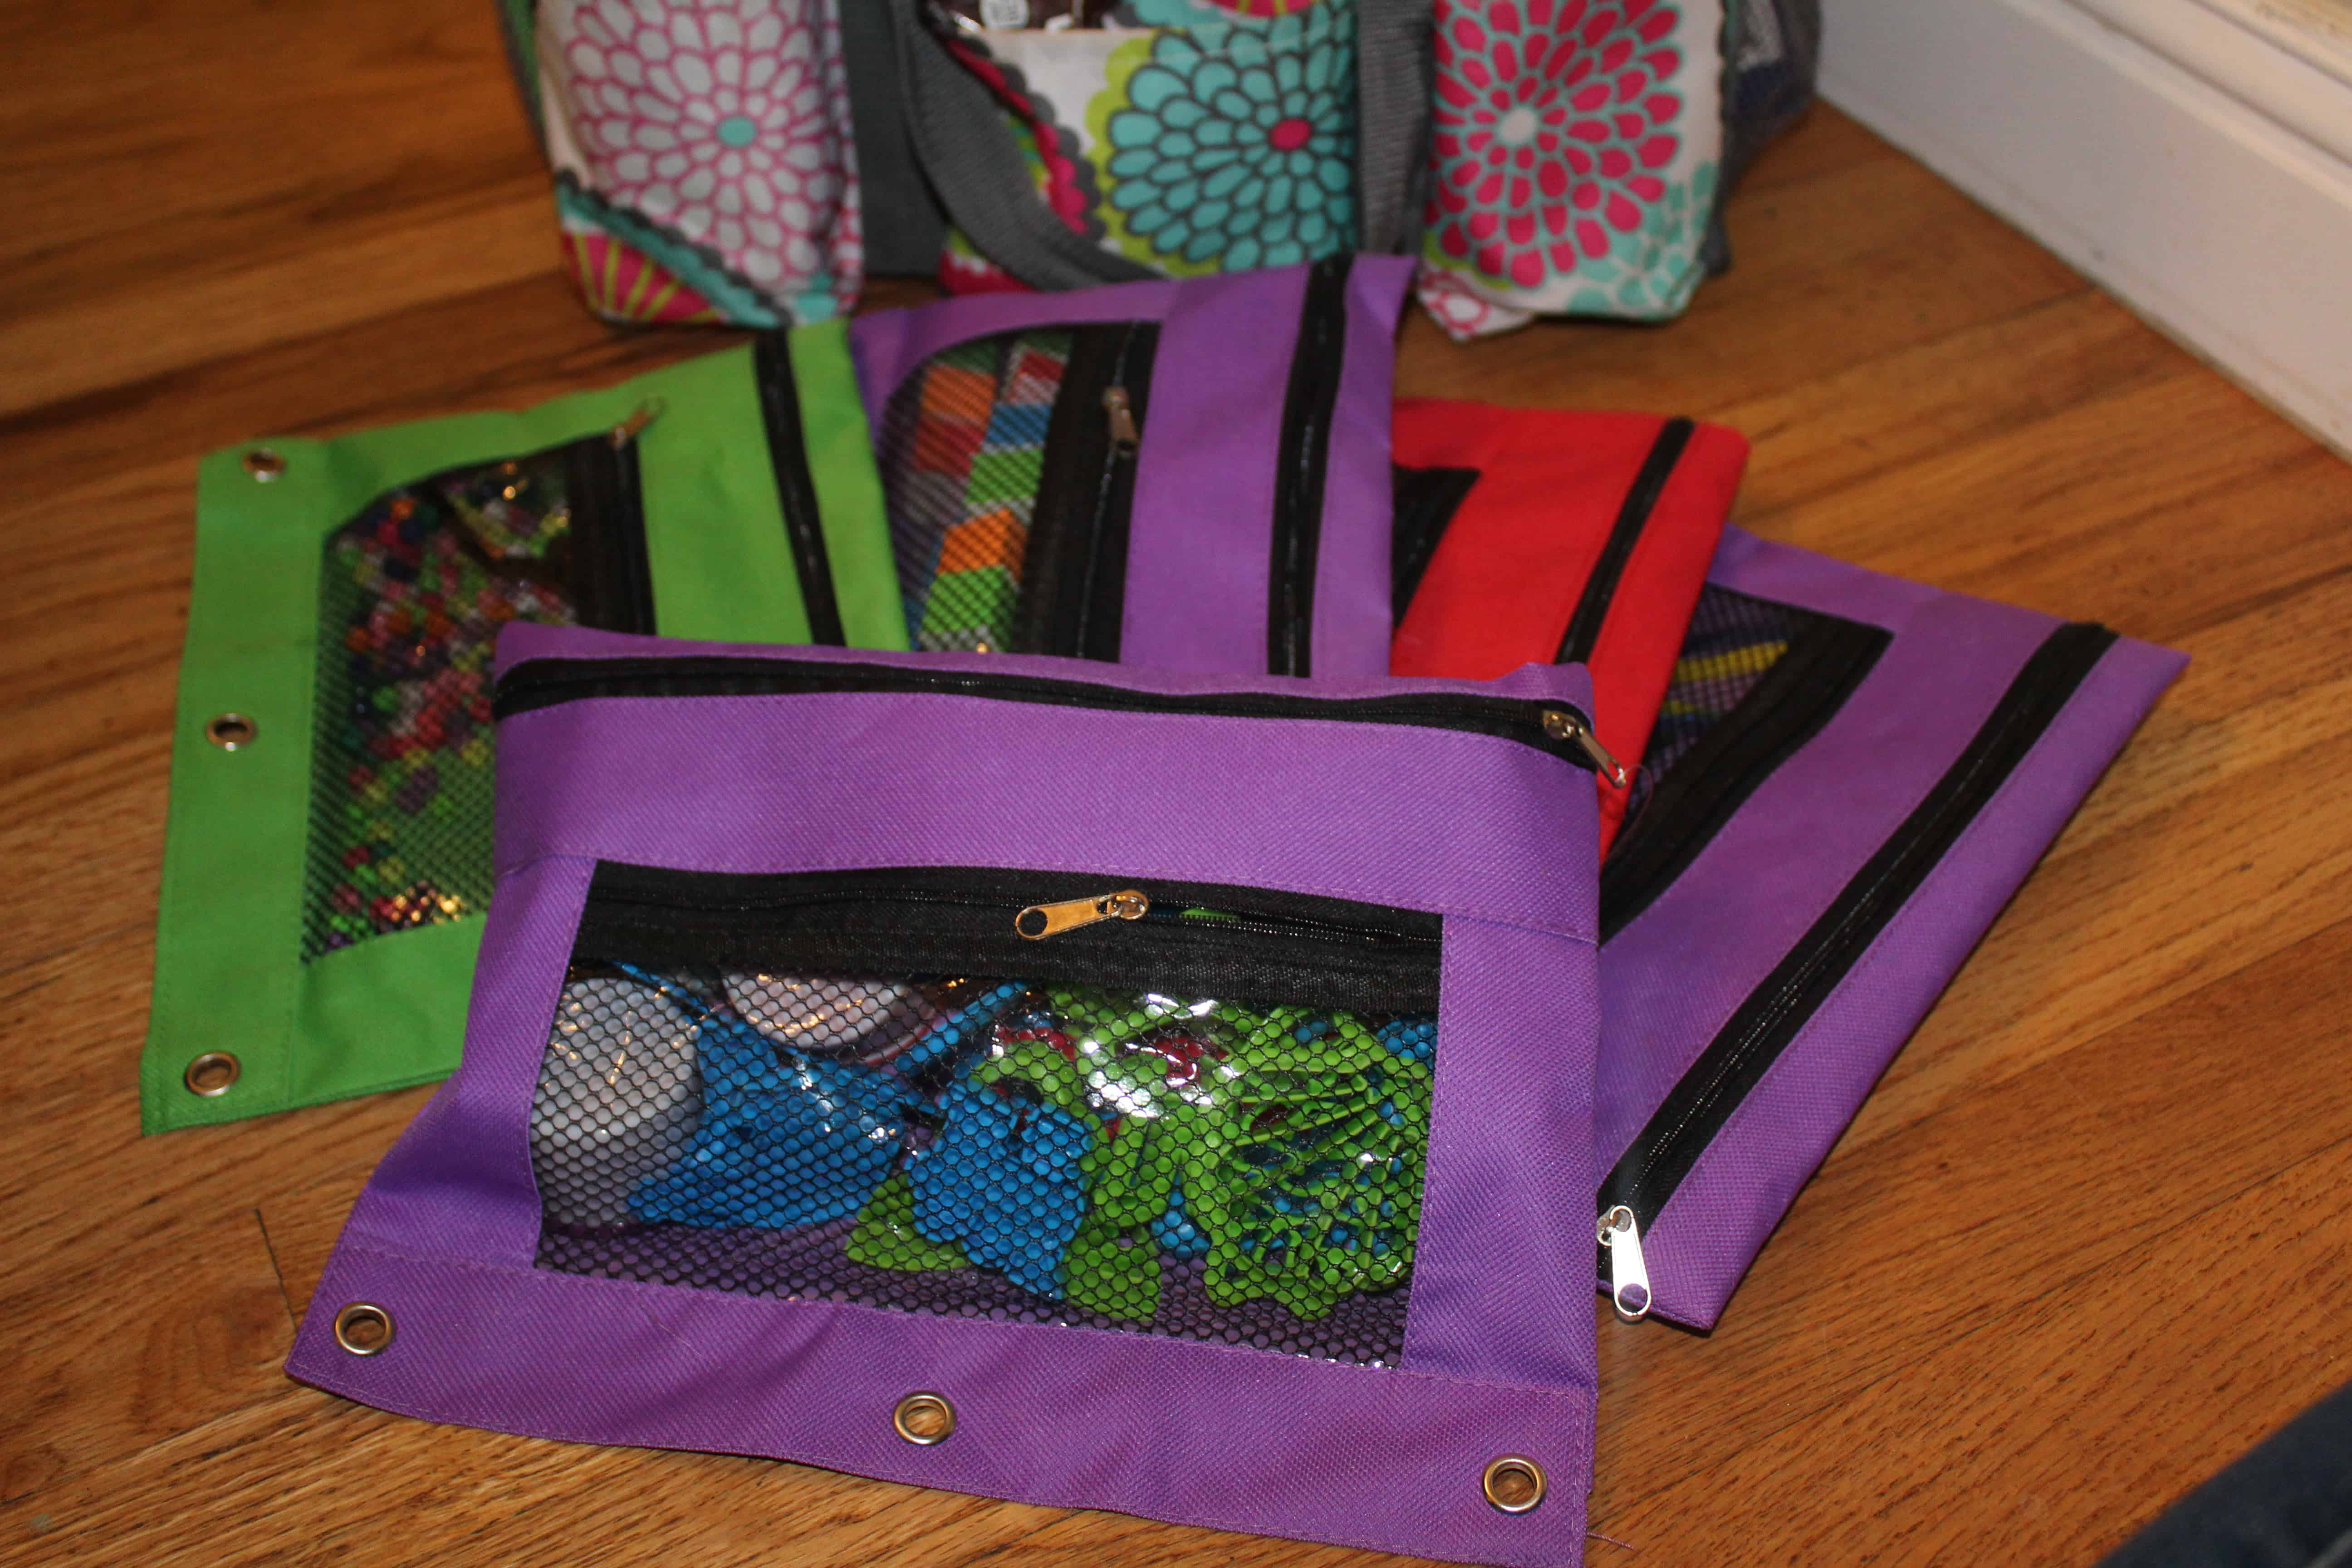 3 ring binder pencil pouches filled with extra toys and items for activities.